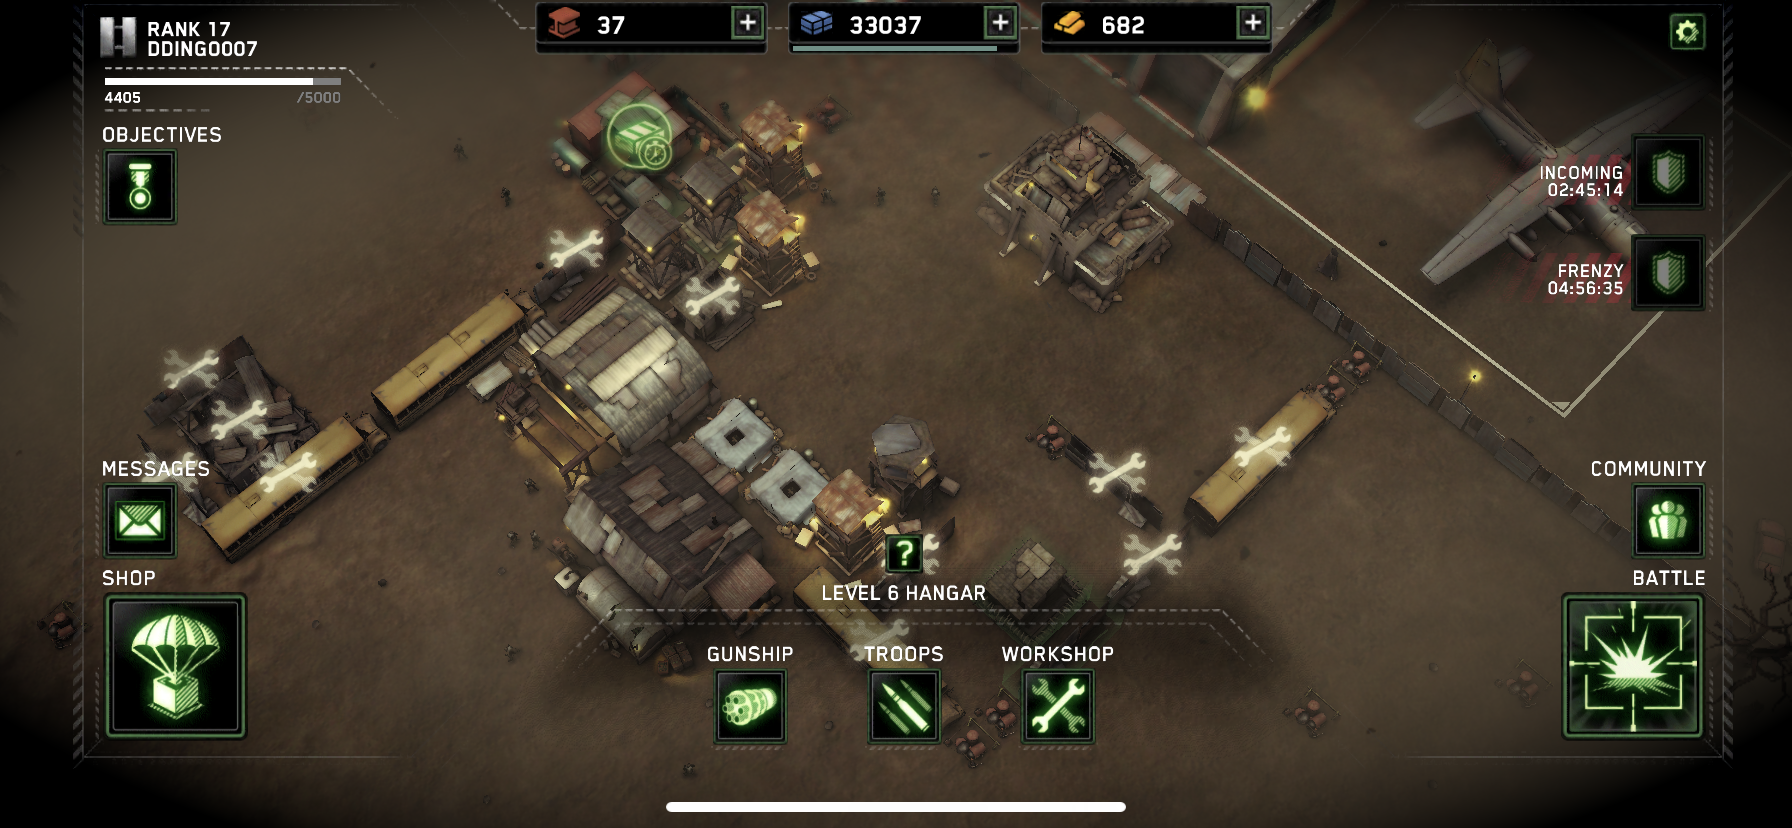 Is there a requirement to upgrade all base buildings?